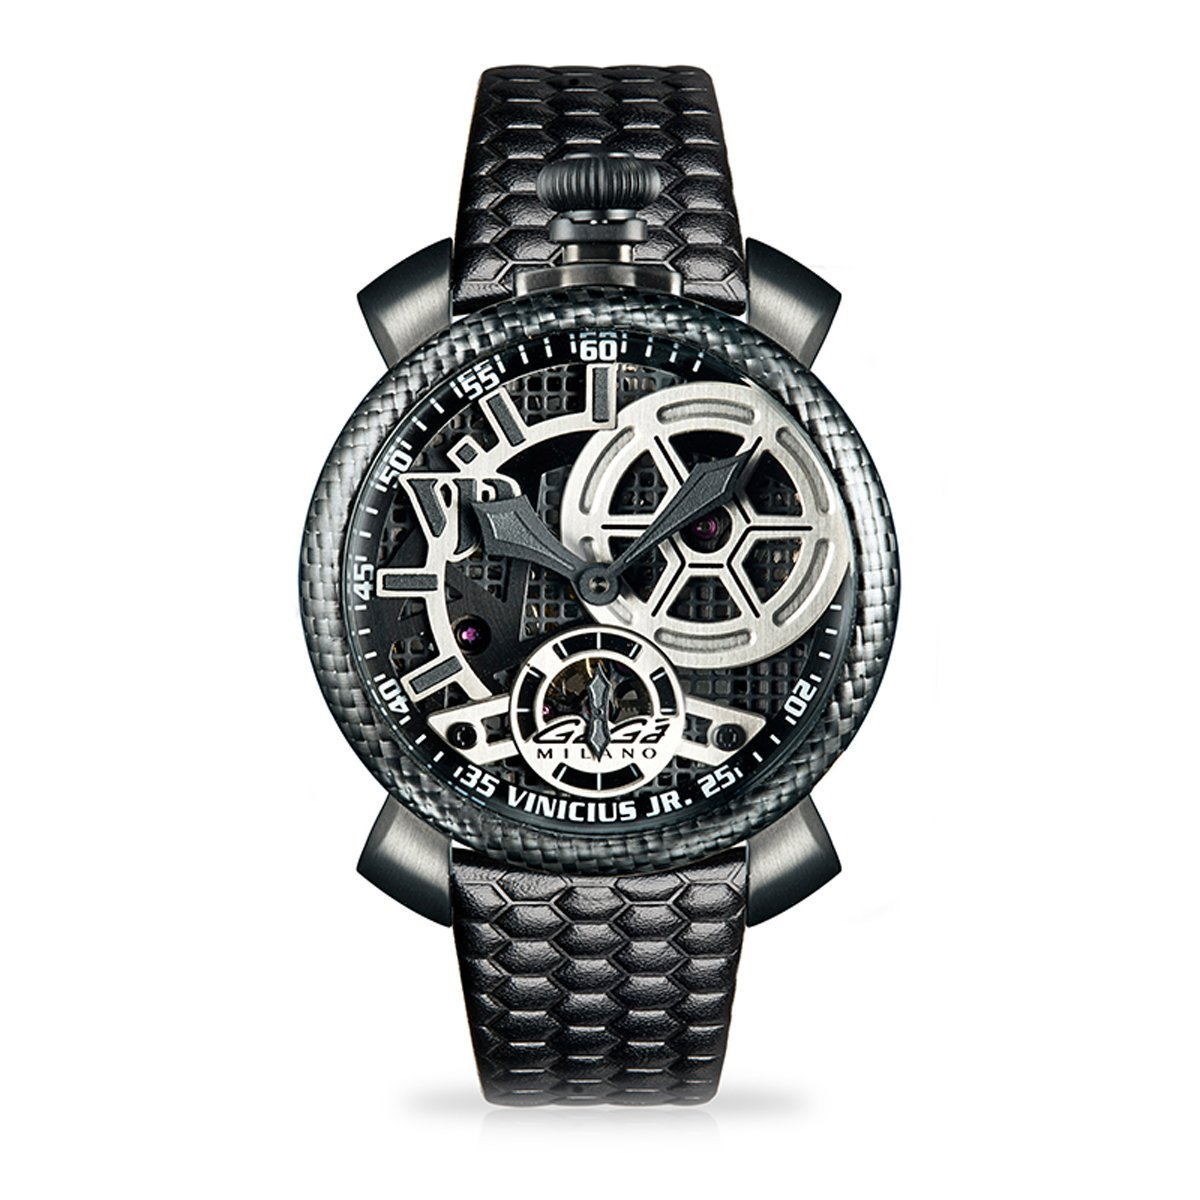 Gaga Milano Vinicious Jr. Skeleton Steel Limited Edition - Watches & Crystals